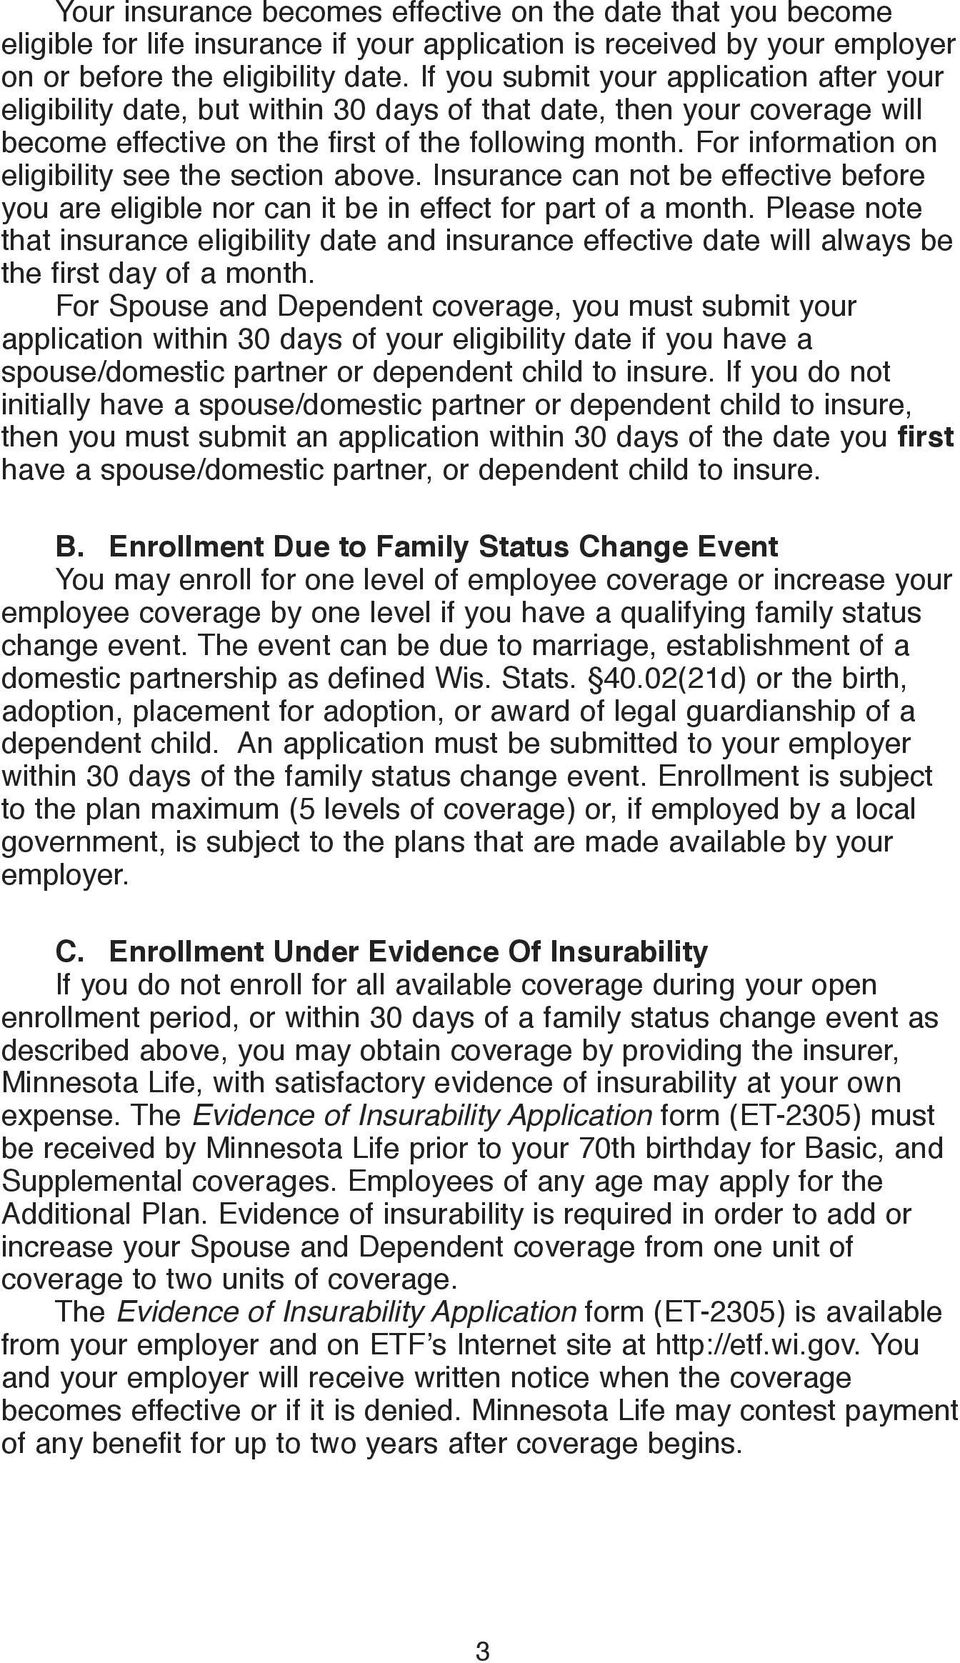 For information on eligibility see the section above. Insurance can not be effective before you are eligible nor can it be in effect for part of a month.